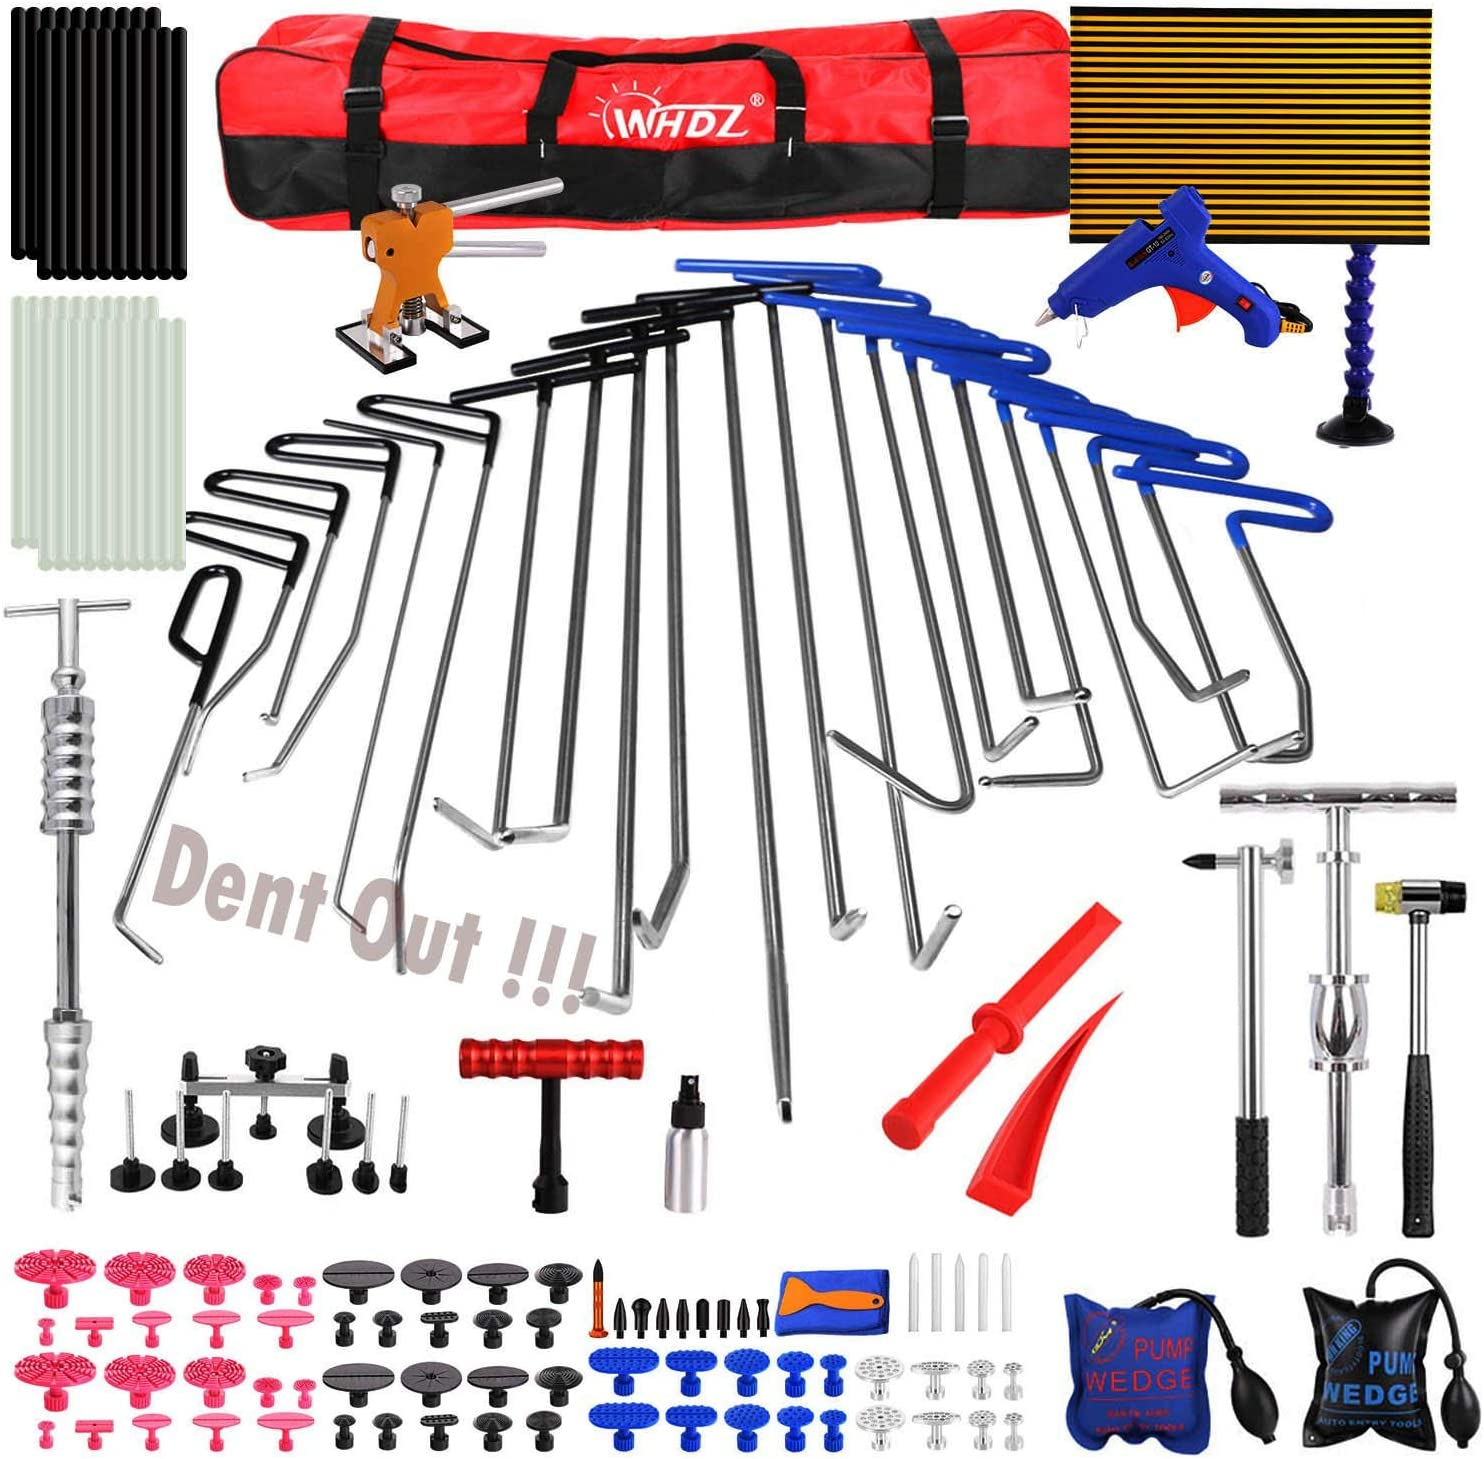 WHDZ Paintless Dent Large special price !! Repair Bombing new work Rods Doub Hammer LED Tools Kit